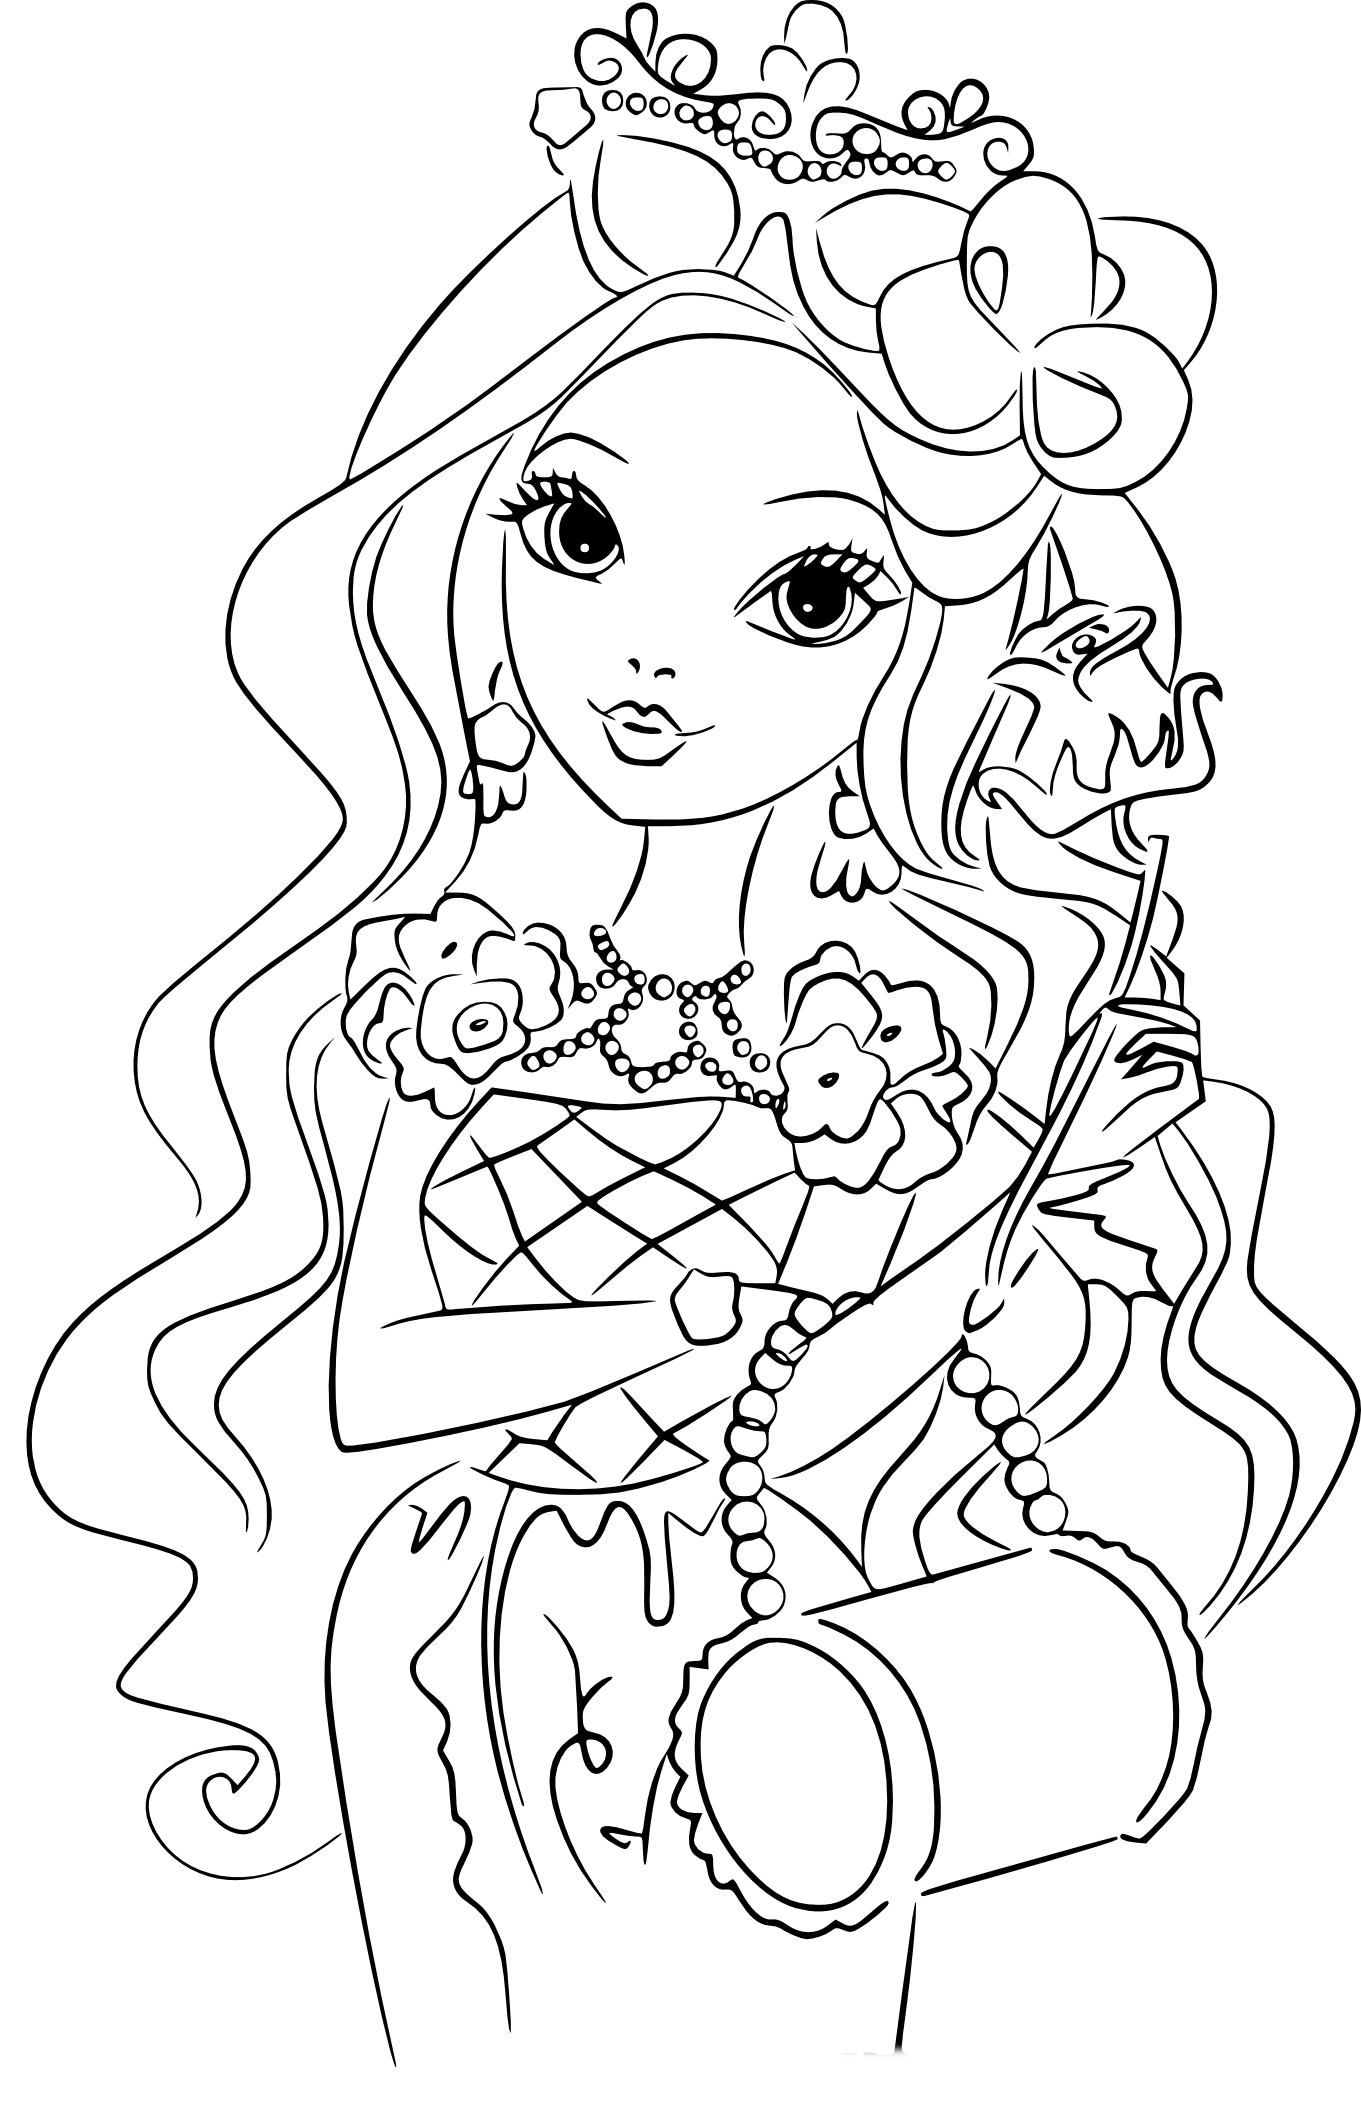 Coloriage fille Belle au bois dormant